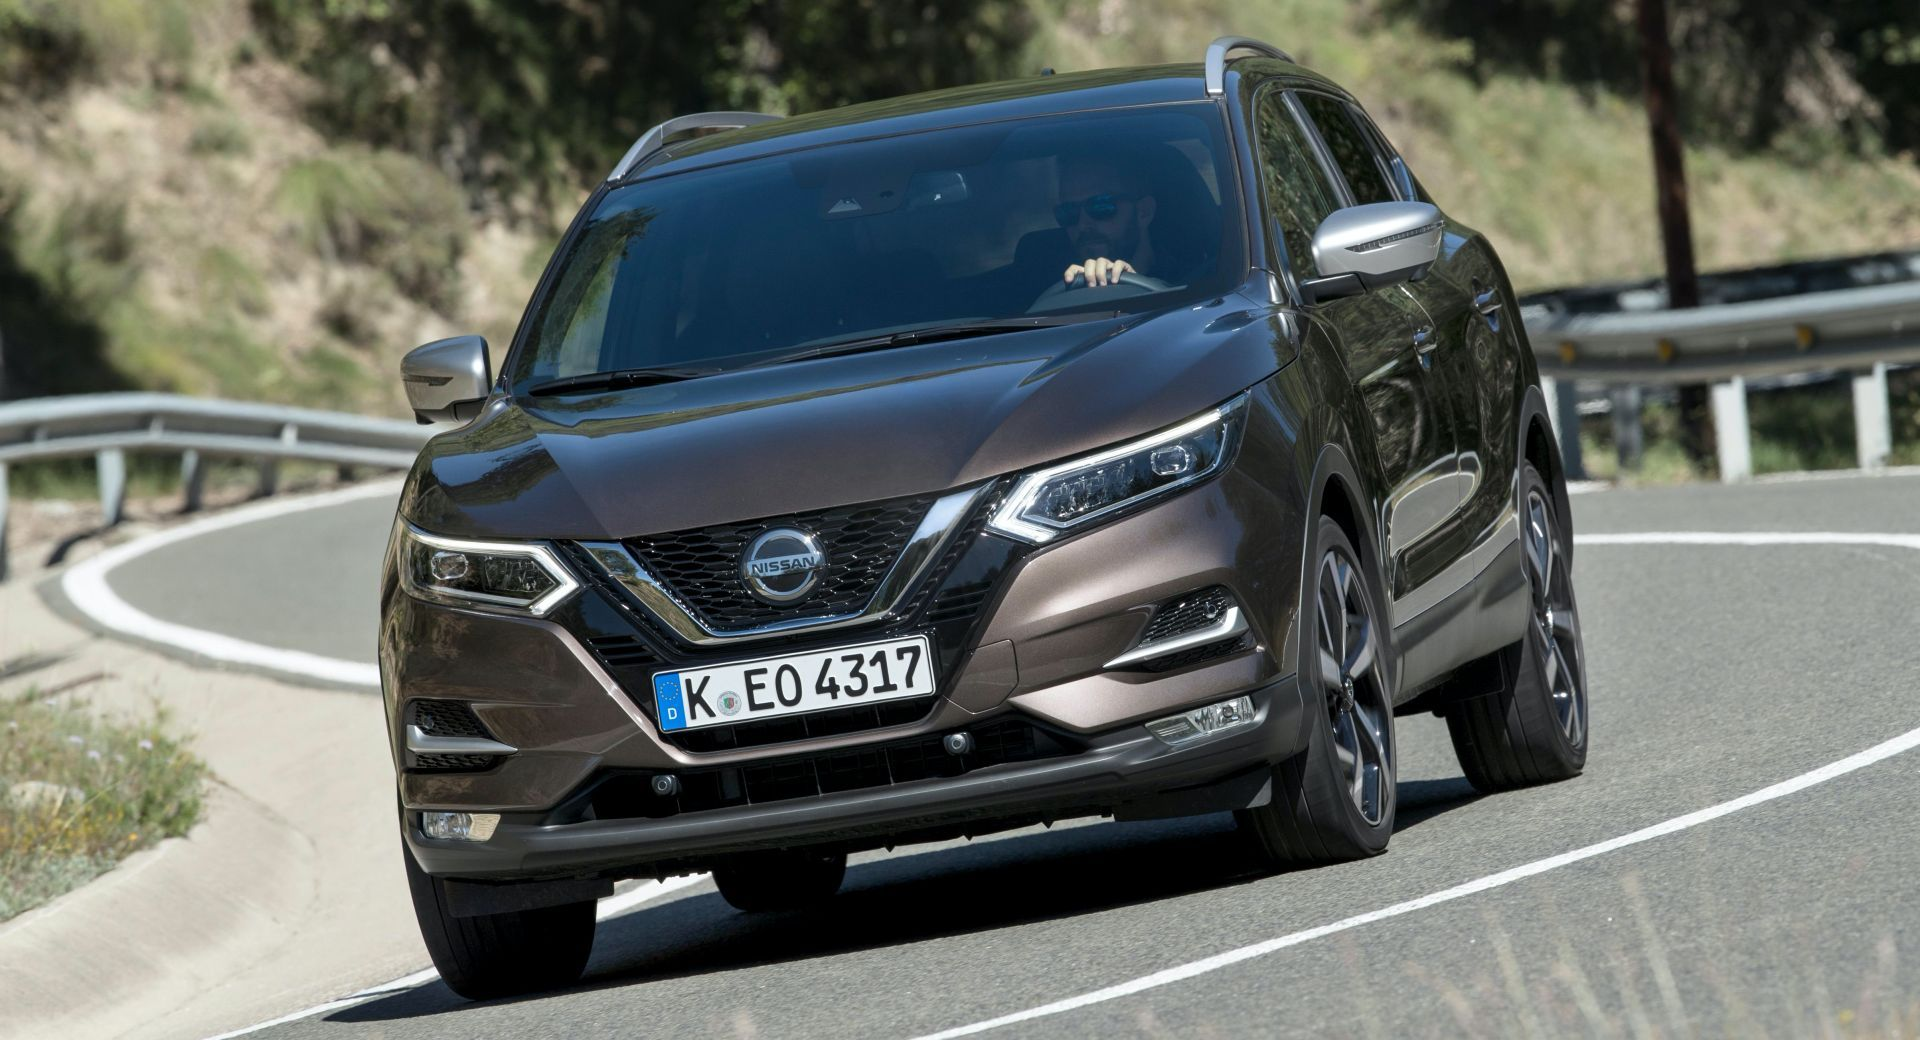 Nissan Committed To Building Next Gen Qashqai In The Uk Despite Brexit Uncertainty Industry Nissan Nissanqashqai Suv U In 2020 Nissan Nissan Qashqai Living In Car